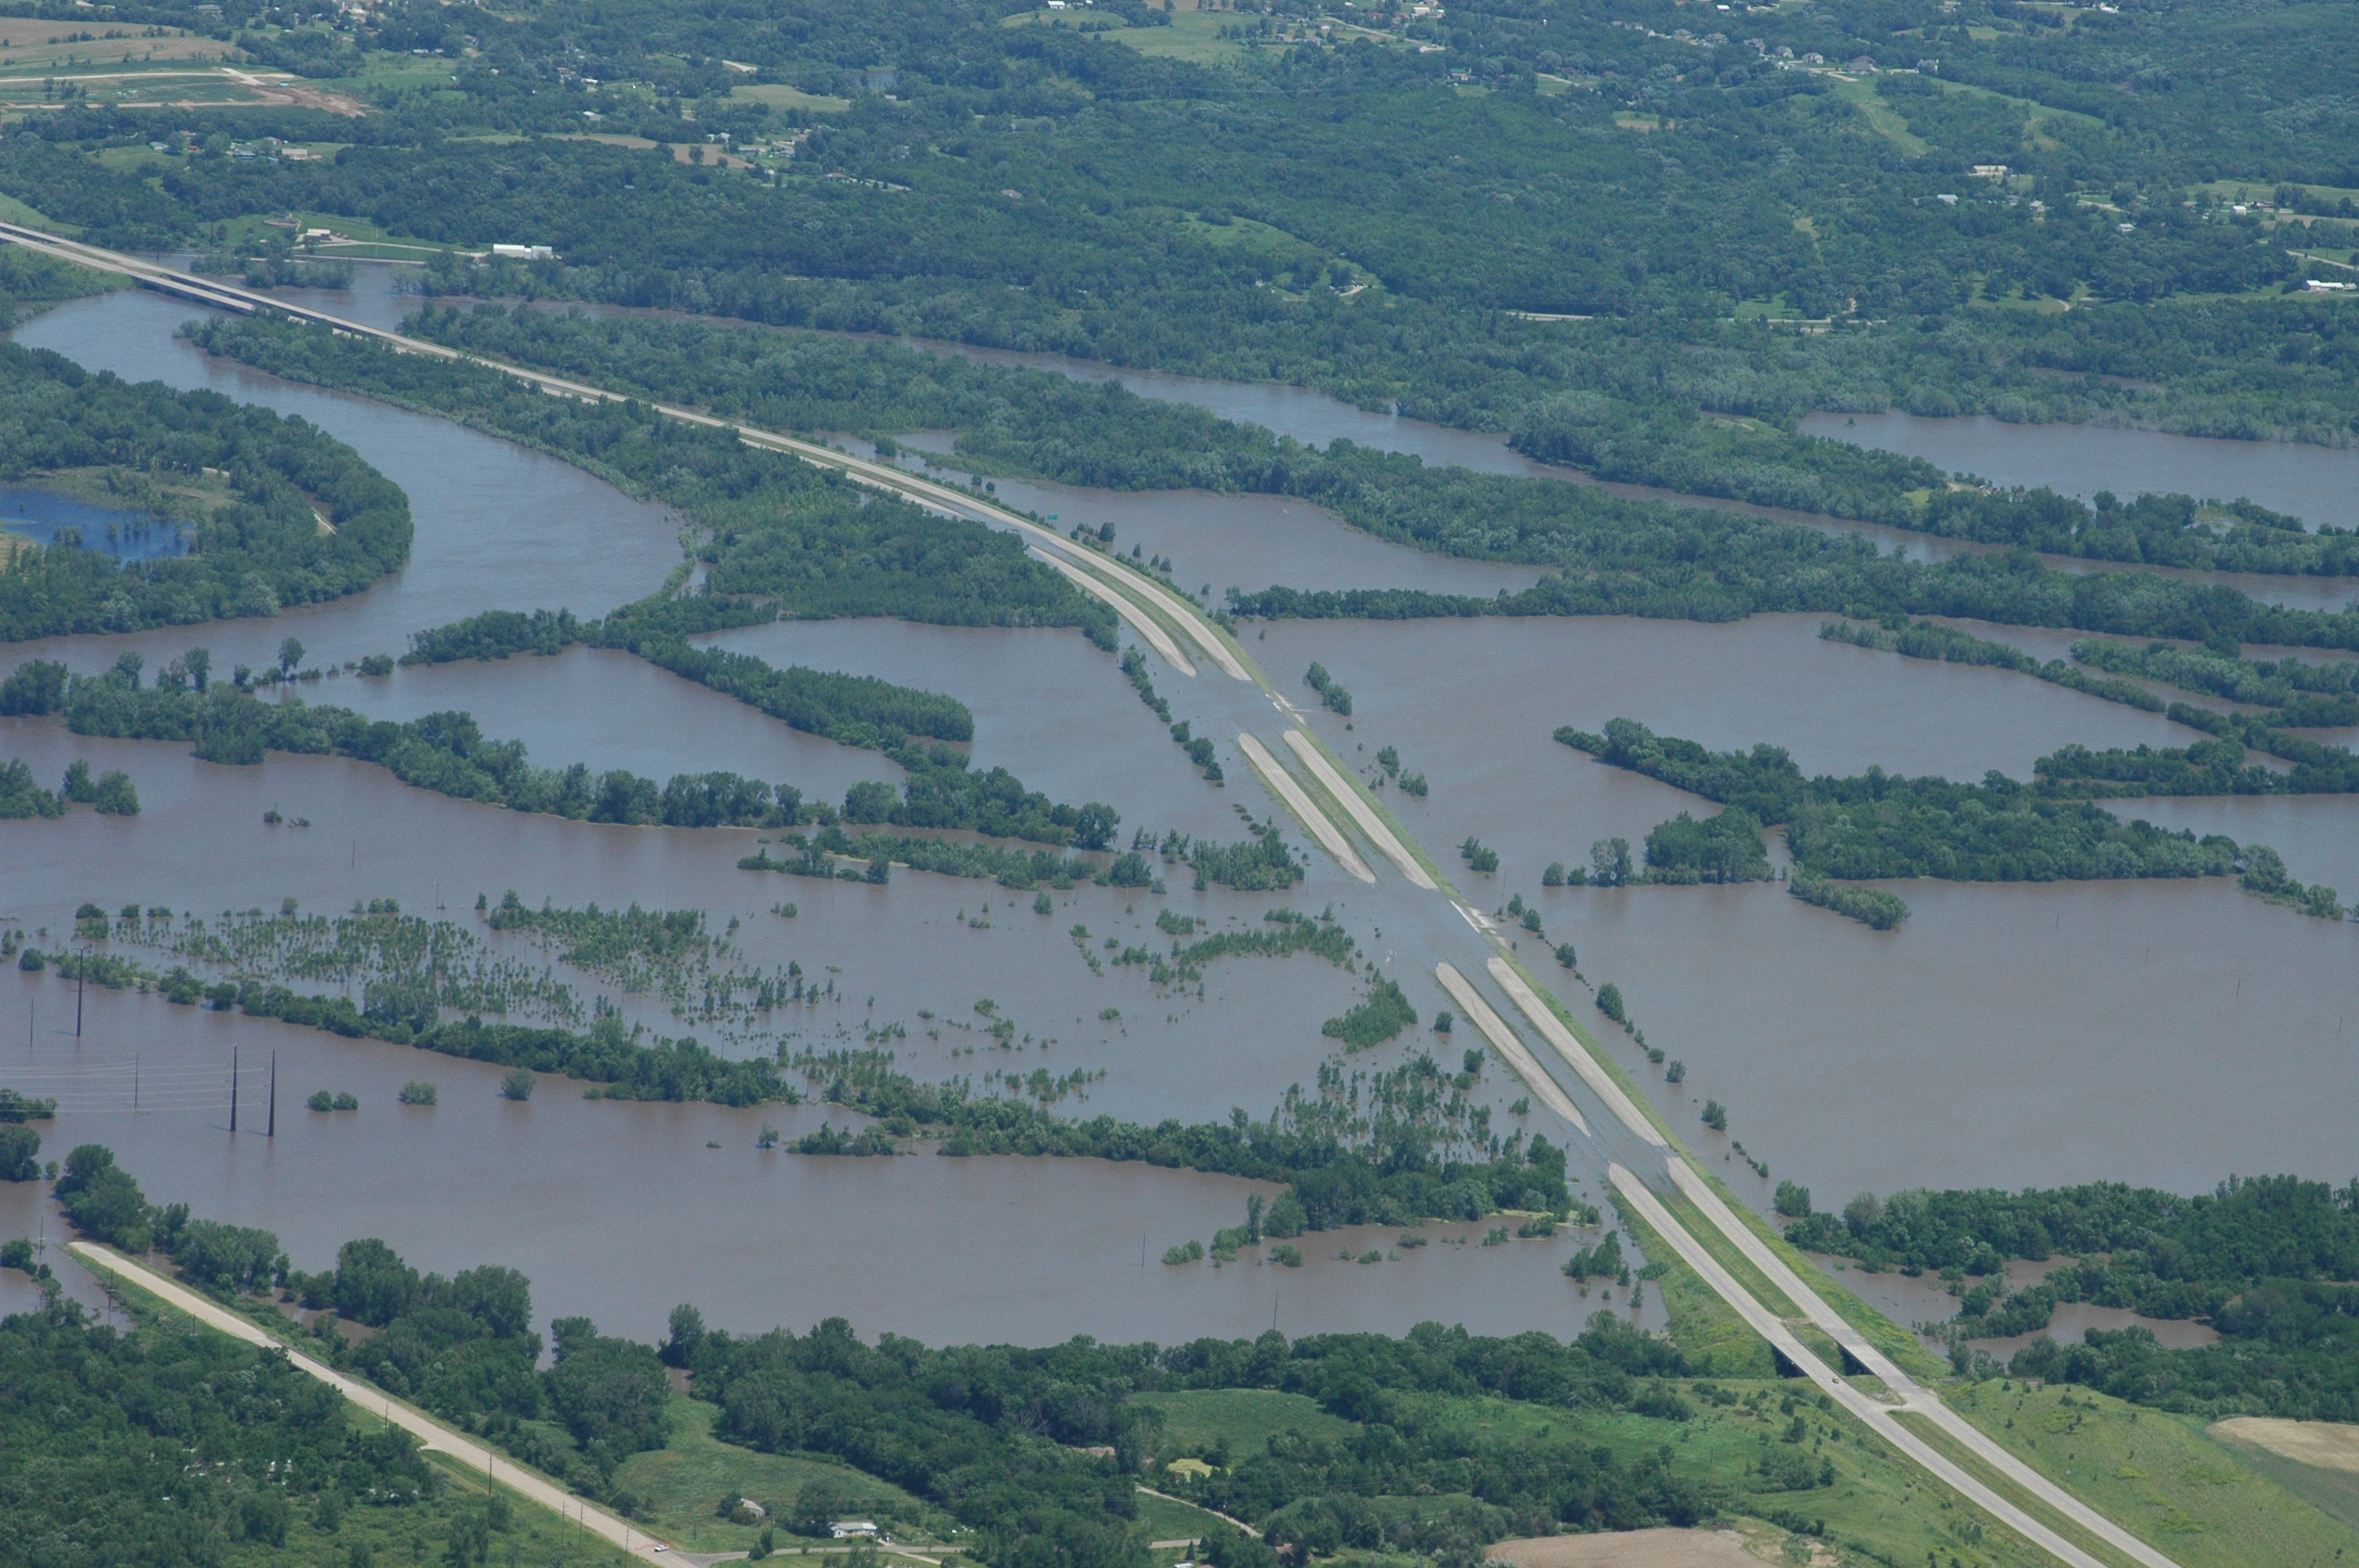 The Des Moines River over Highway 65 southeast of Des Moines on June 14, 2008. Photo courtesy of the Civil Air Patrol.